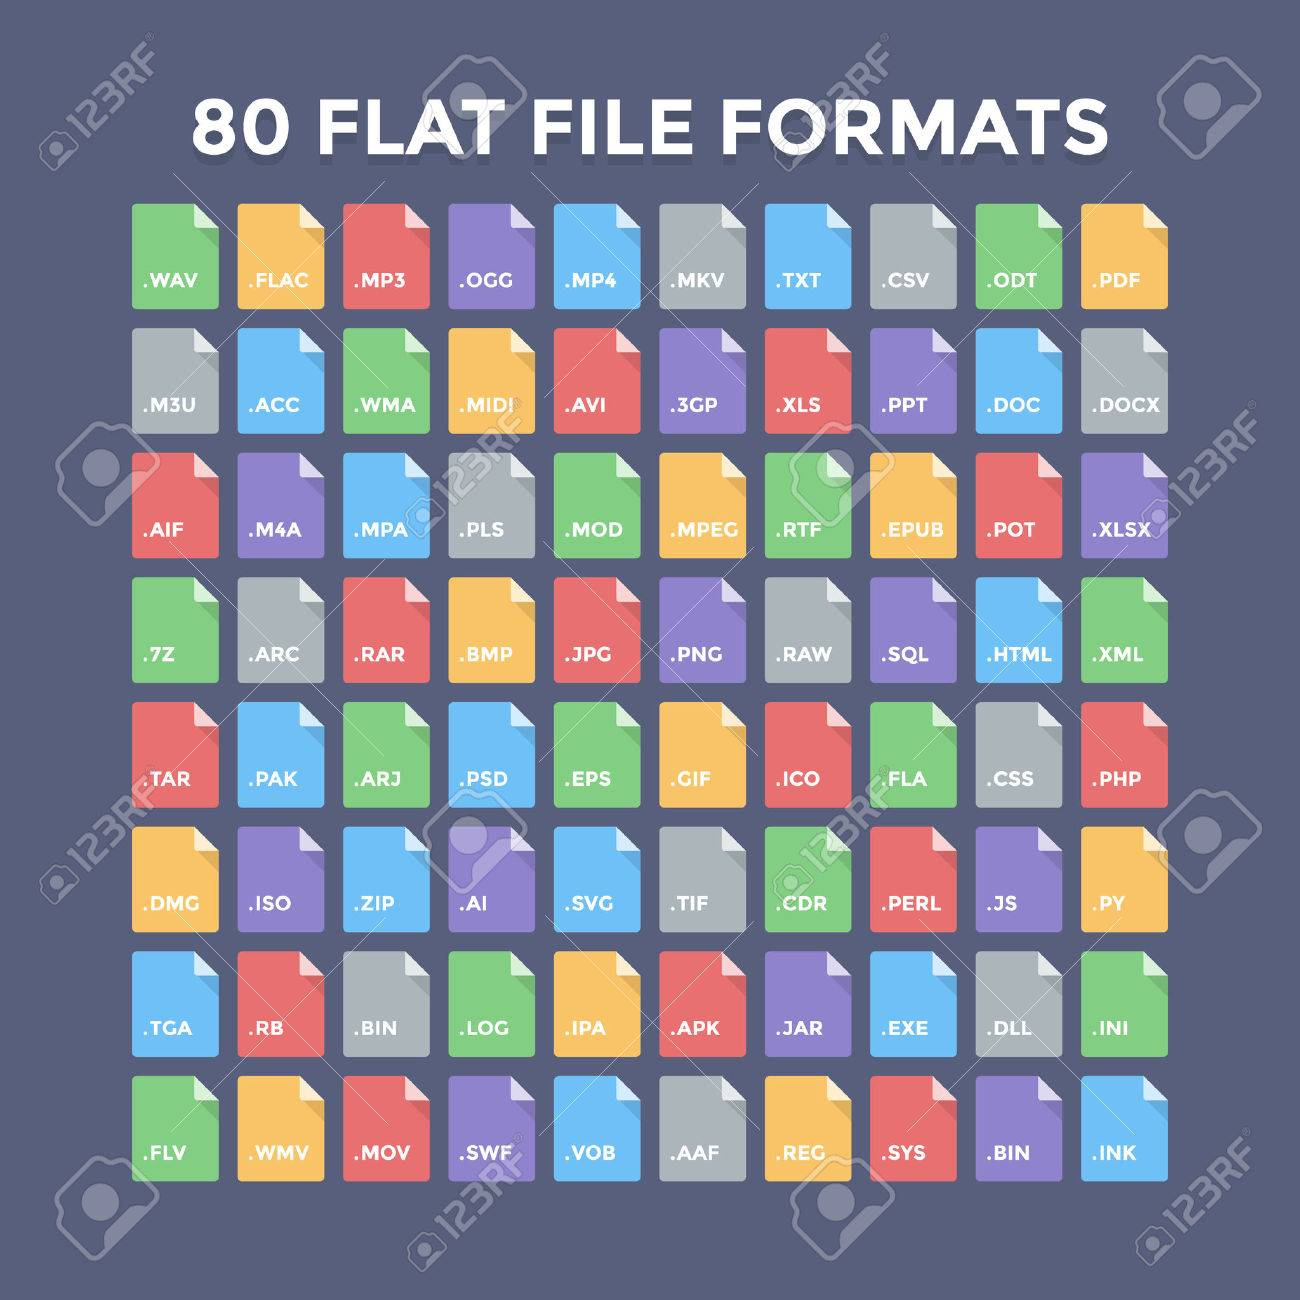 Flat file format icons. Audio, video, image, system, archive, code and document file types Stock Vector - 50314173